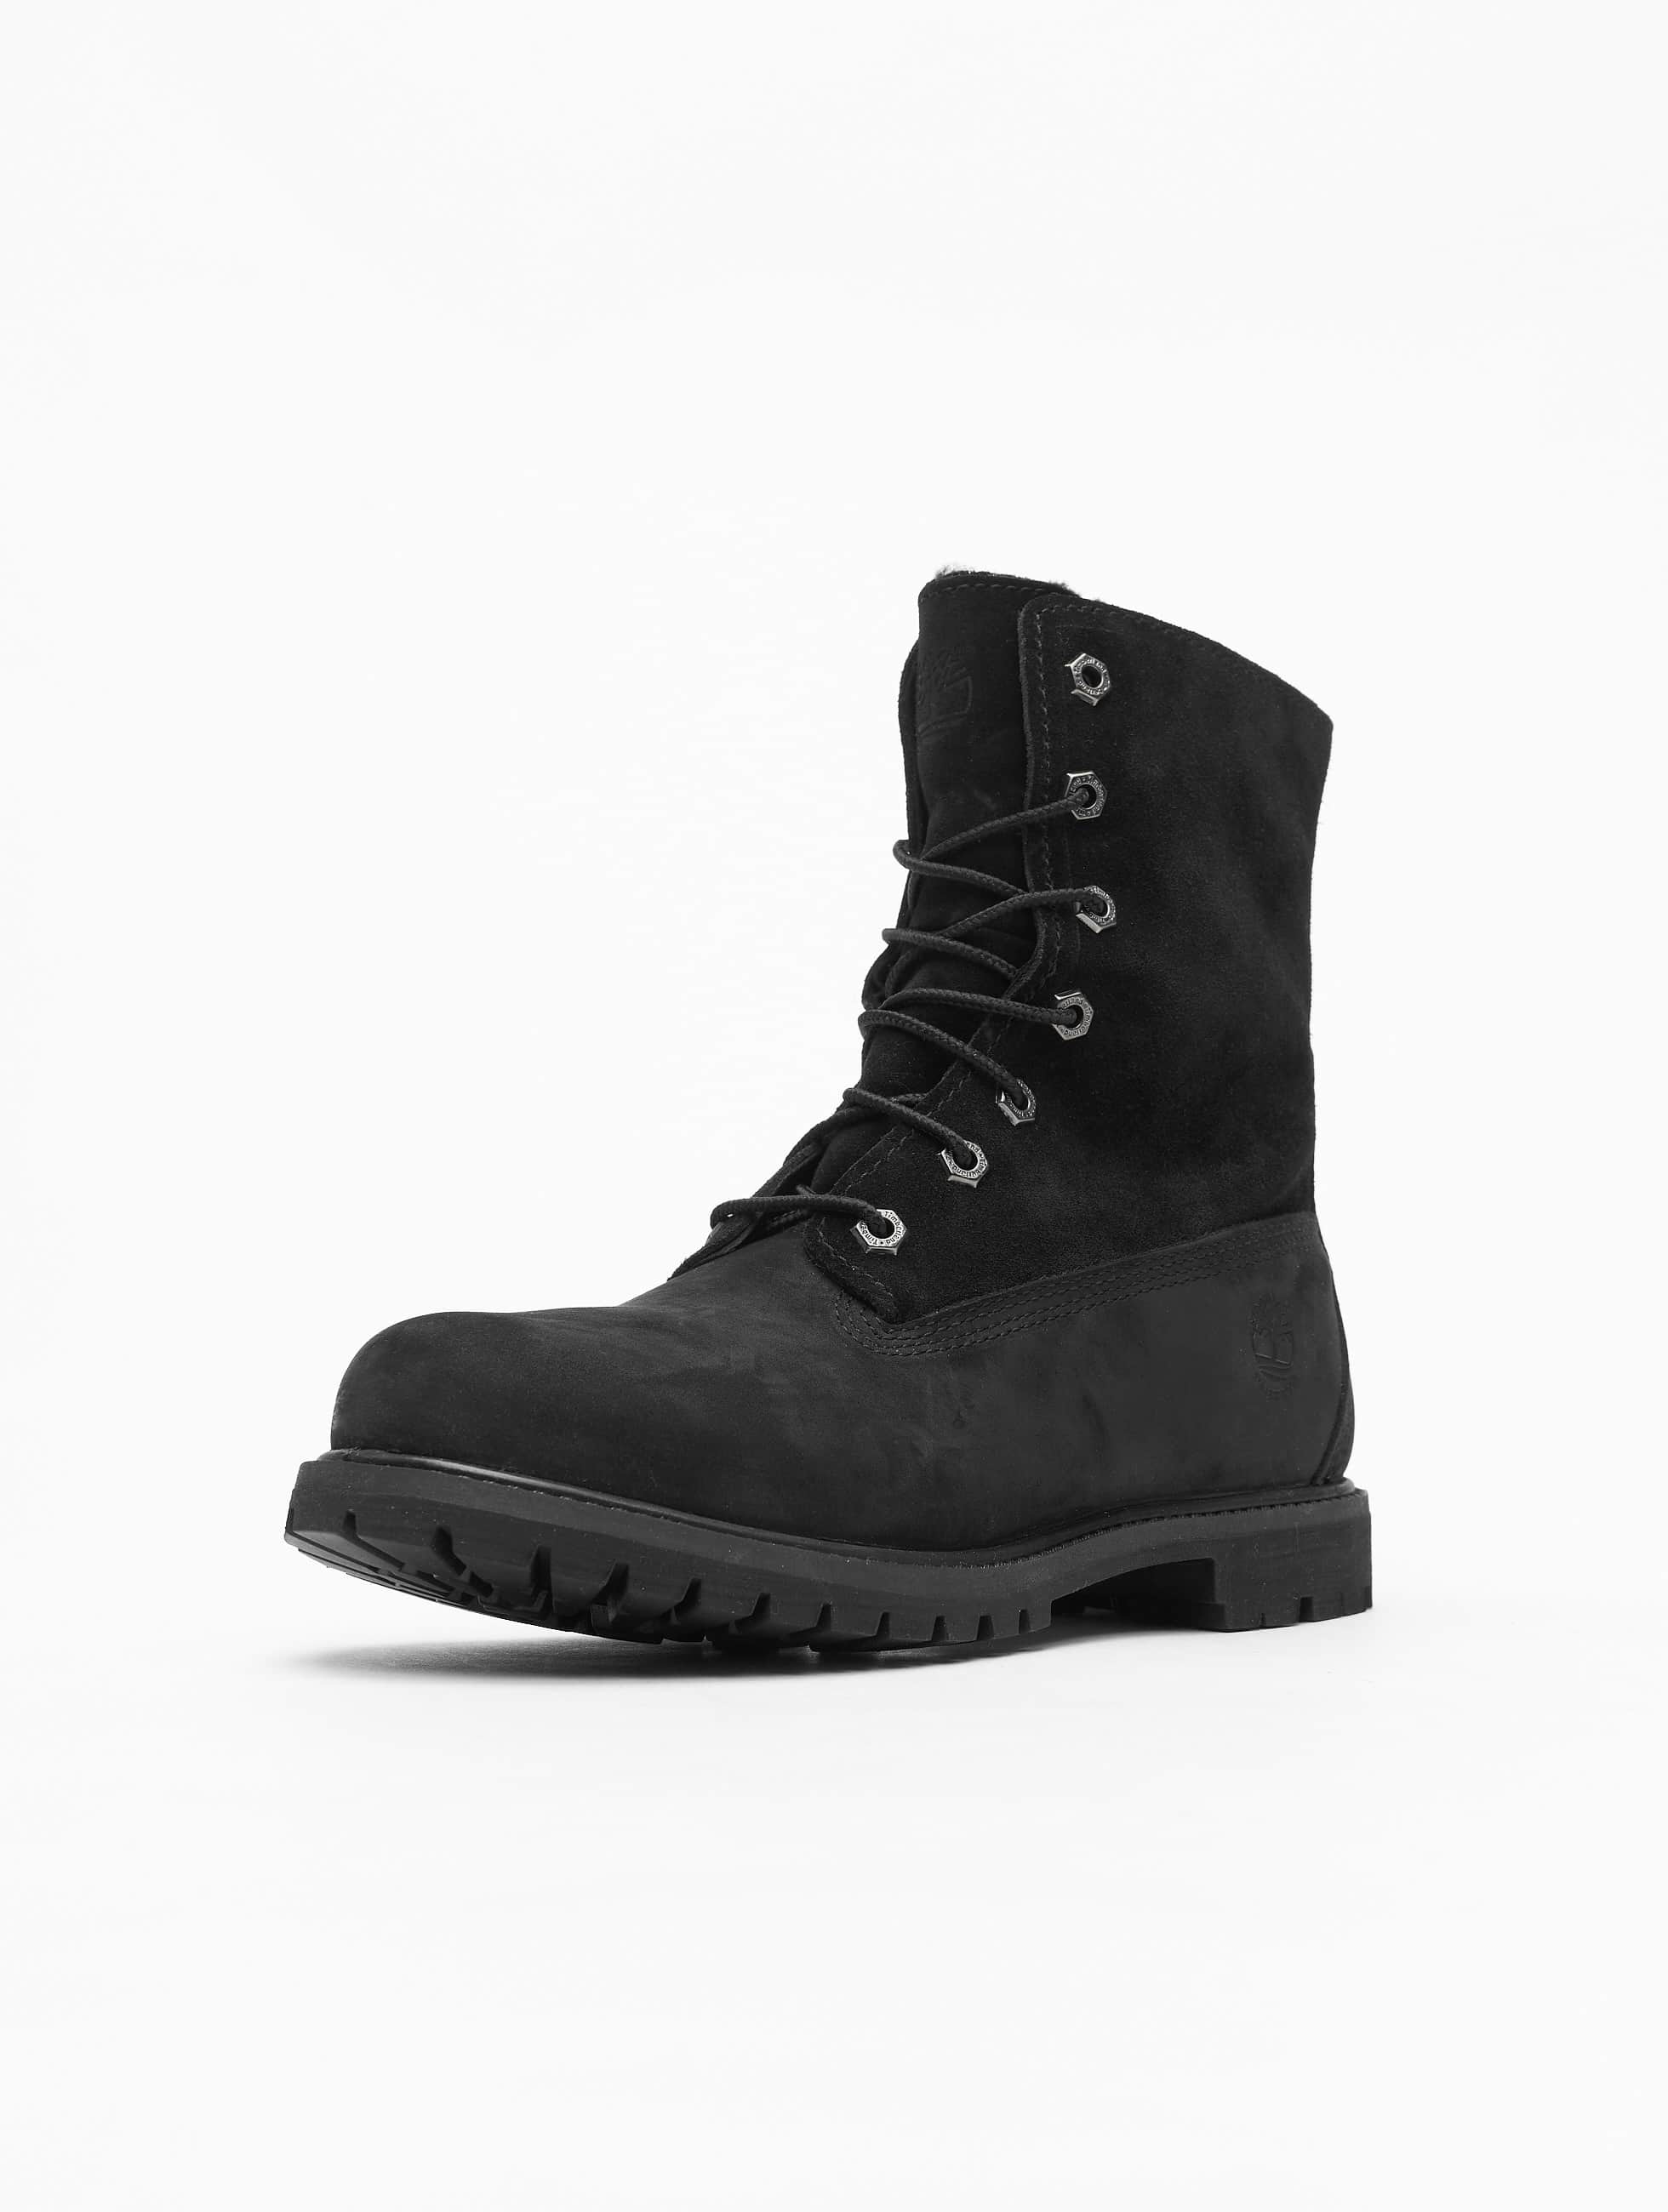 timberland authentics waterproof noir femme chaussures montantes timberland acheter pas cher. Black Bedroom Furniture Sets. Home Design Ideas